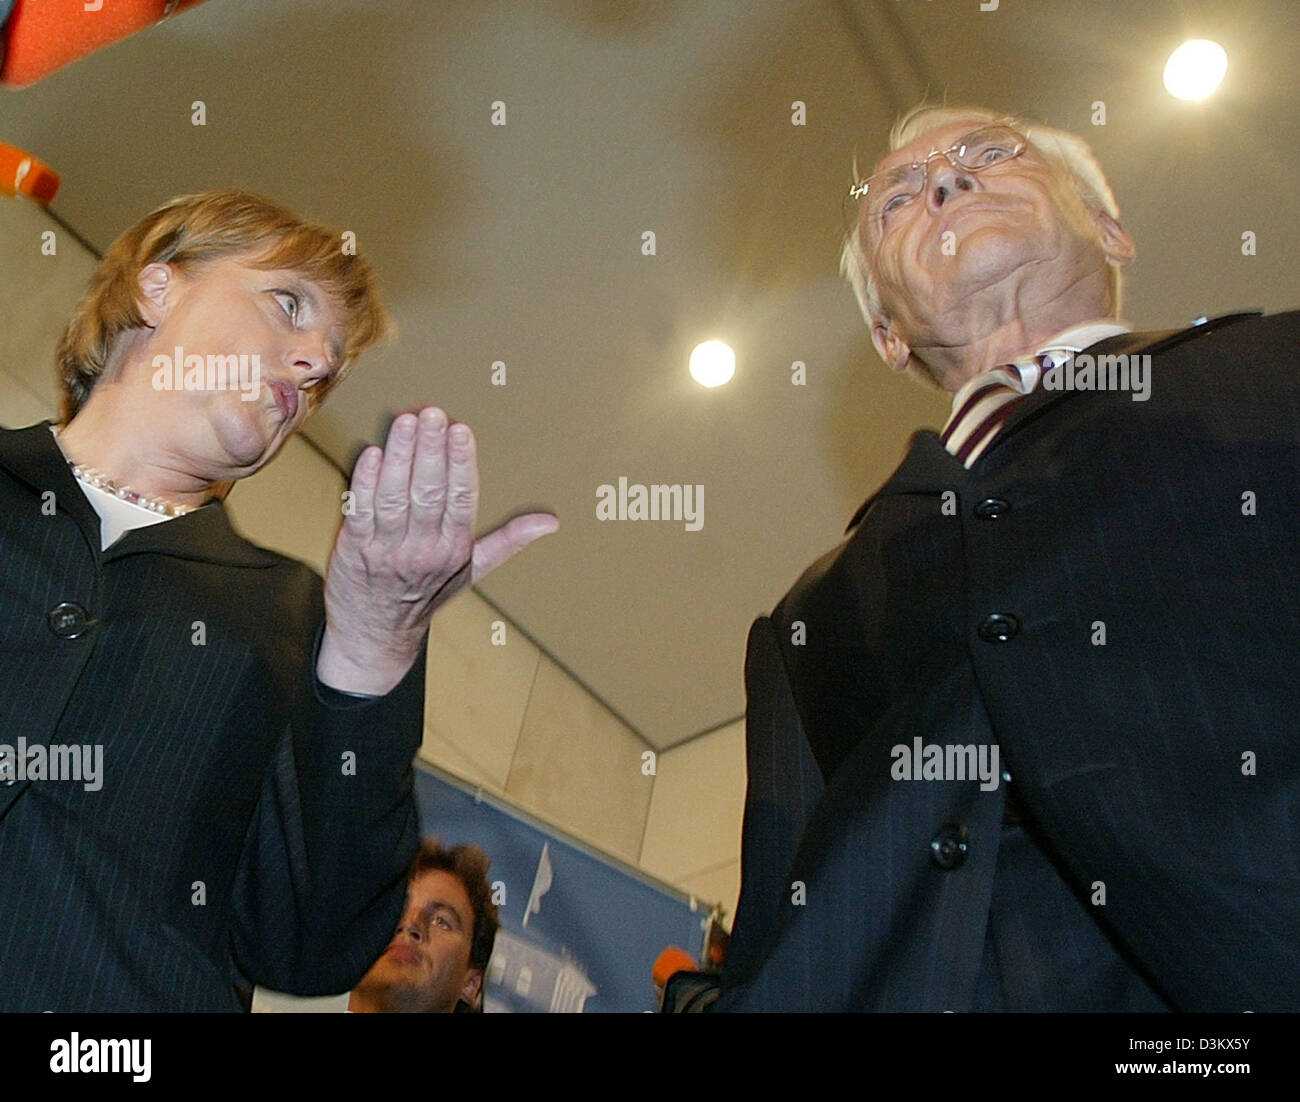 (dpa) - Angela Merkel (R), Chairwoman of the CDU and chancellor candidate, stands in front of Michael Glos, Head of the Bavarian CSU, talk to each other after the recent sessions of the new elected parliamentary faction of the CDU/CSU in Berlin, Tuesday, 20 September 2005. Despite the week results in the general election for the German Bundestag, Merkel was re-elected by her party  Stock Photo